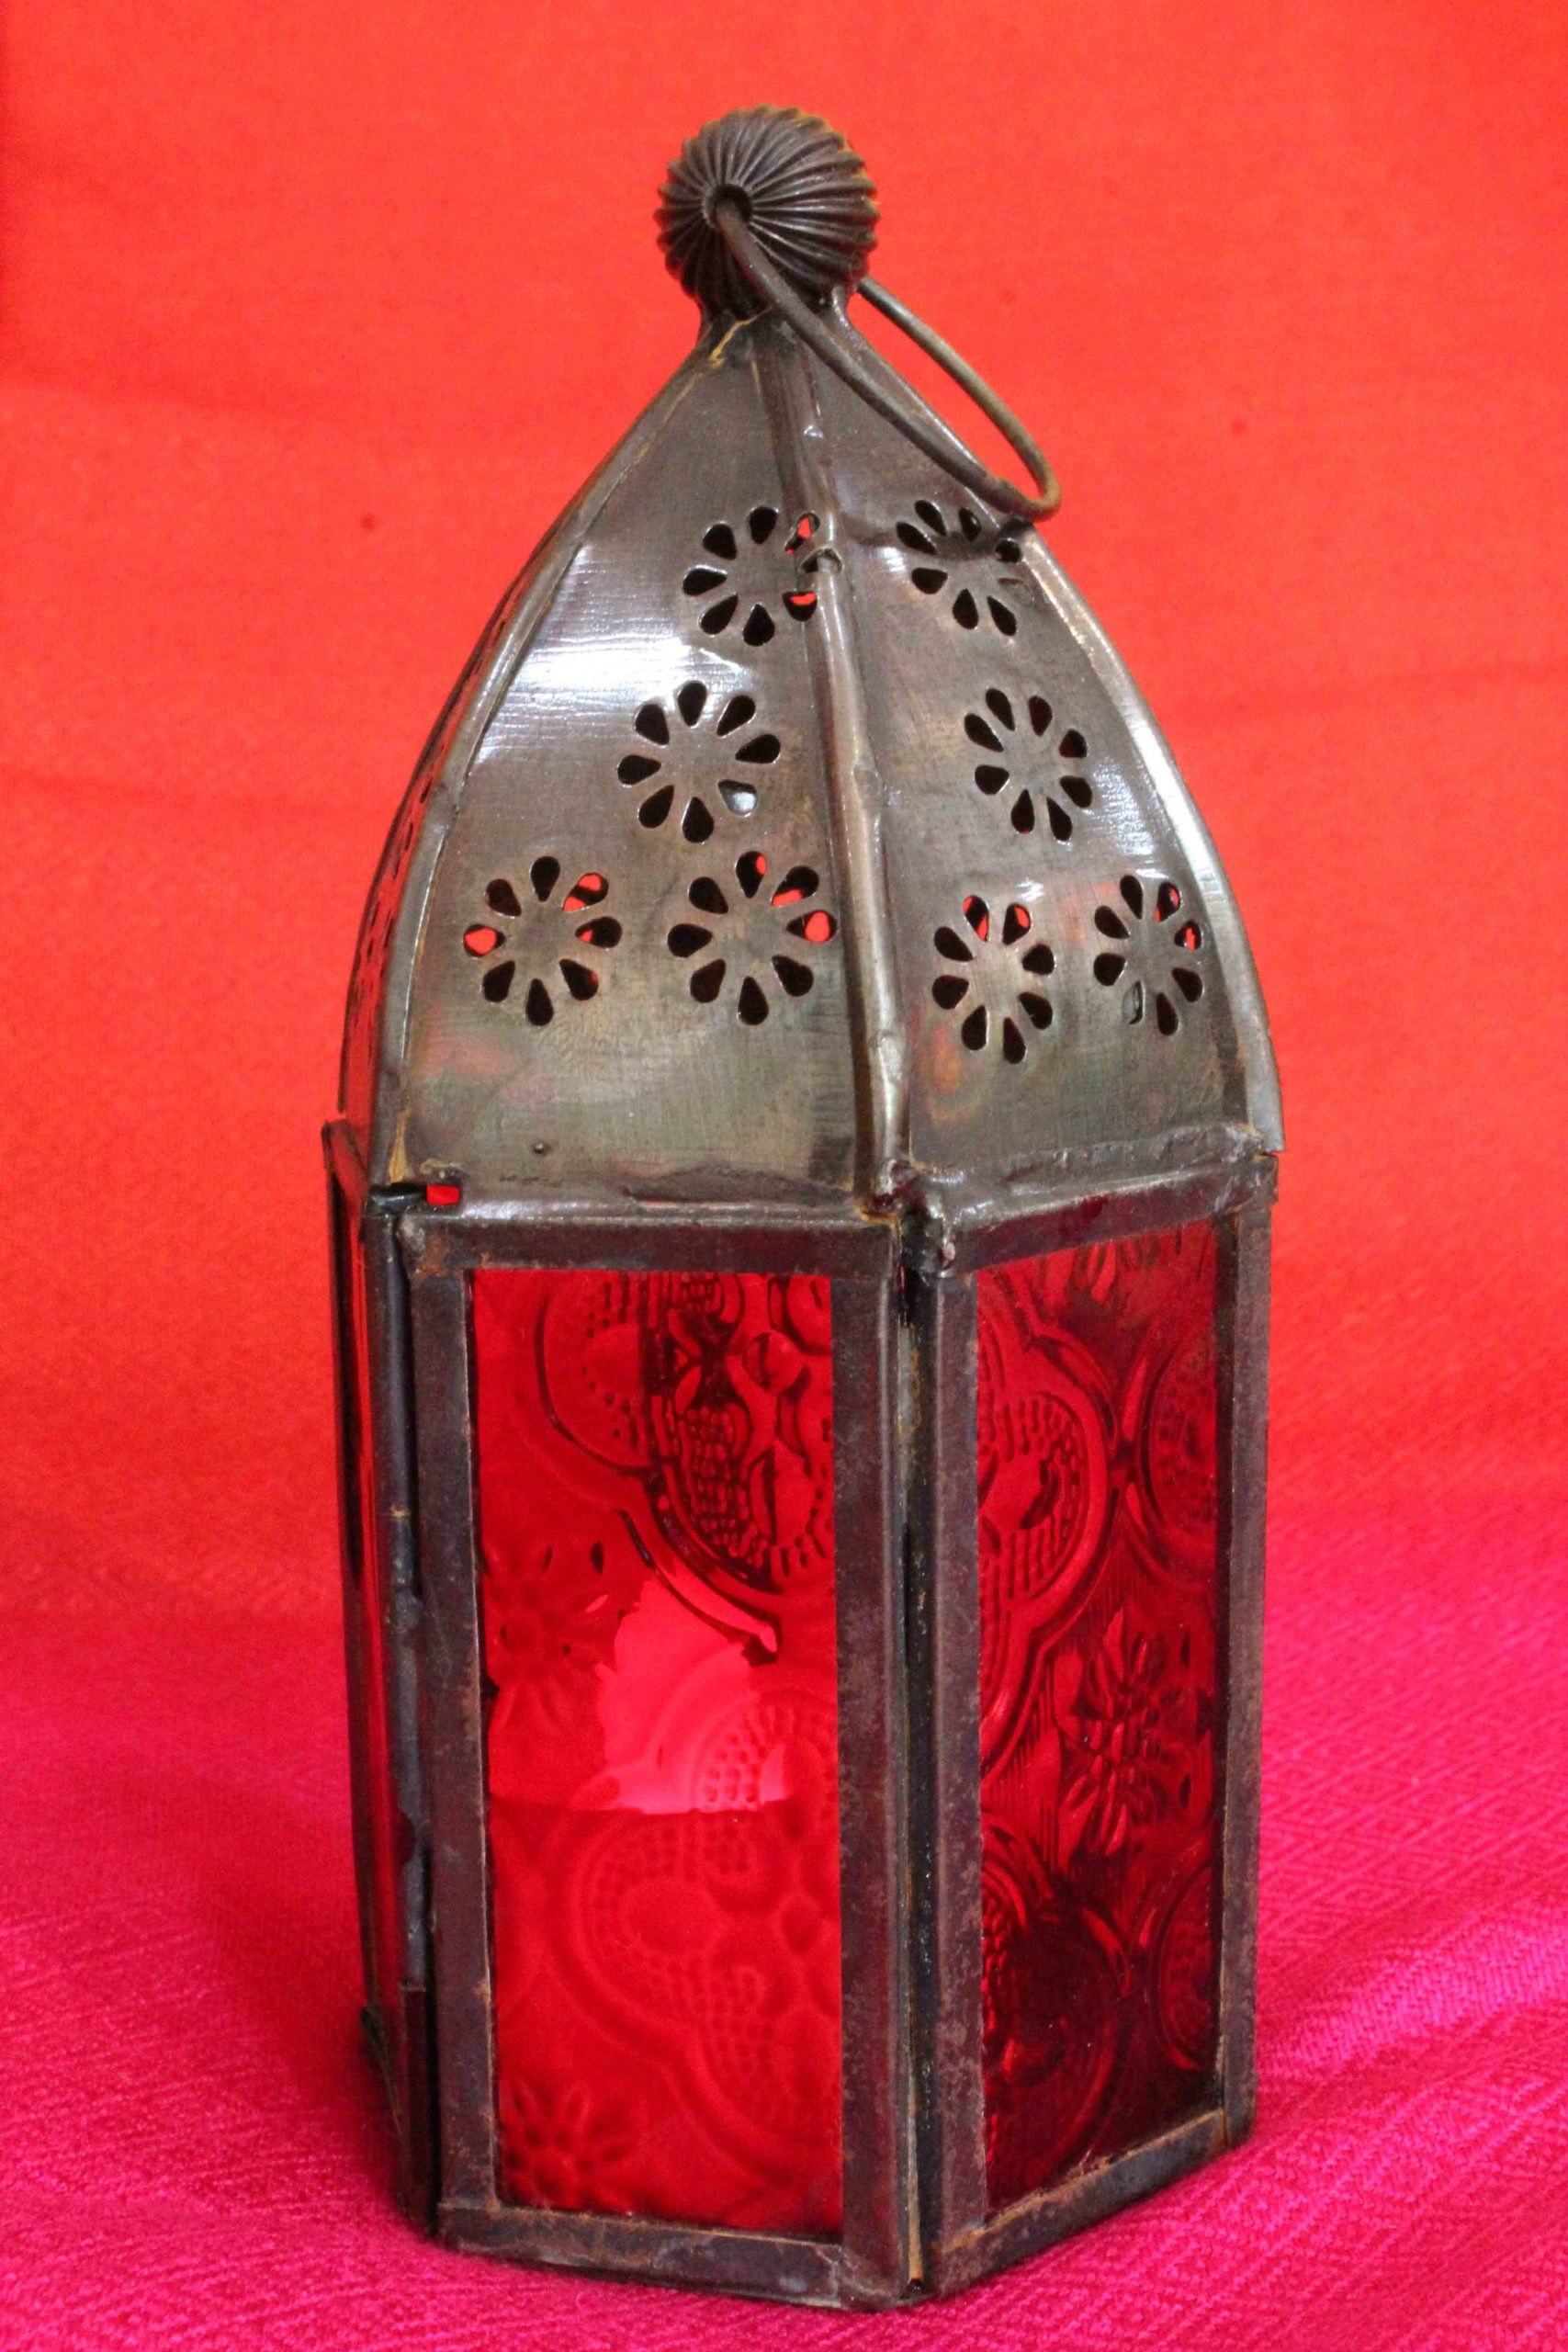 Red Hanging Candle Light Holder Online Shopping